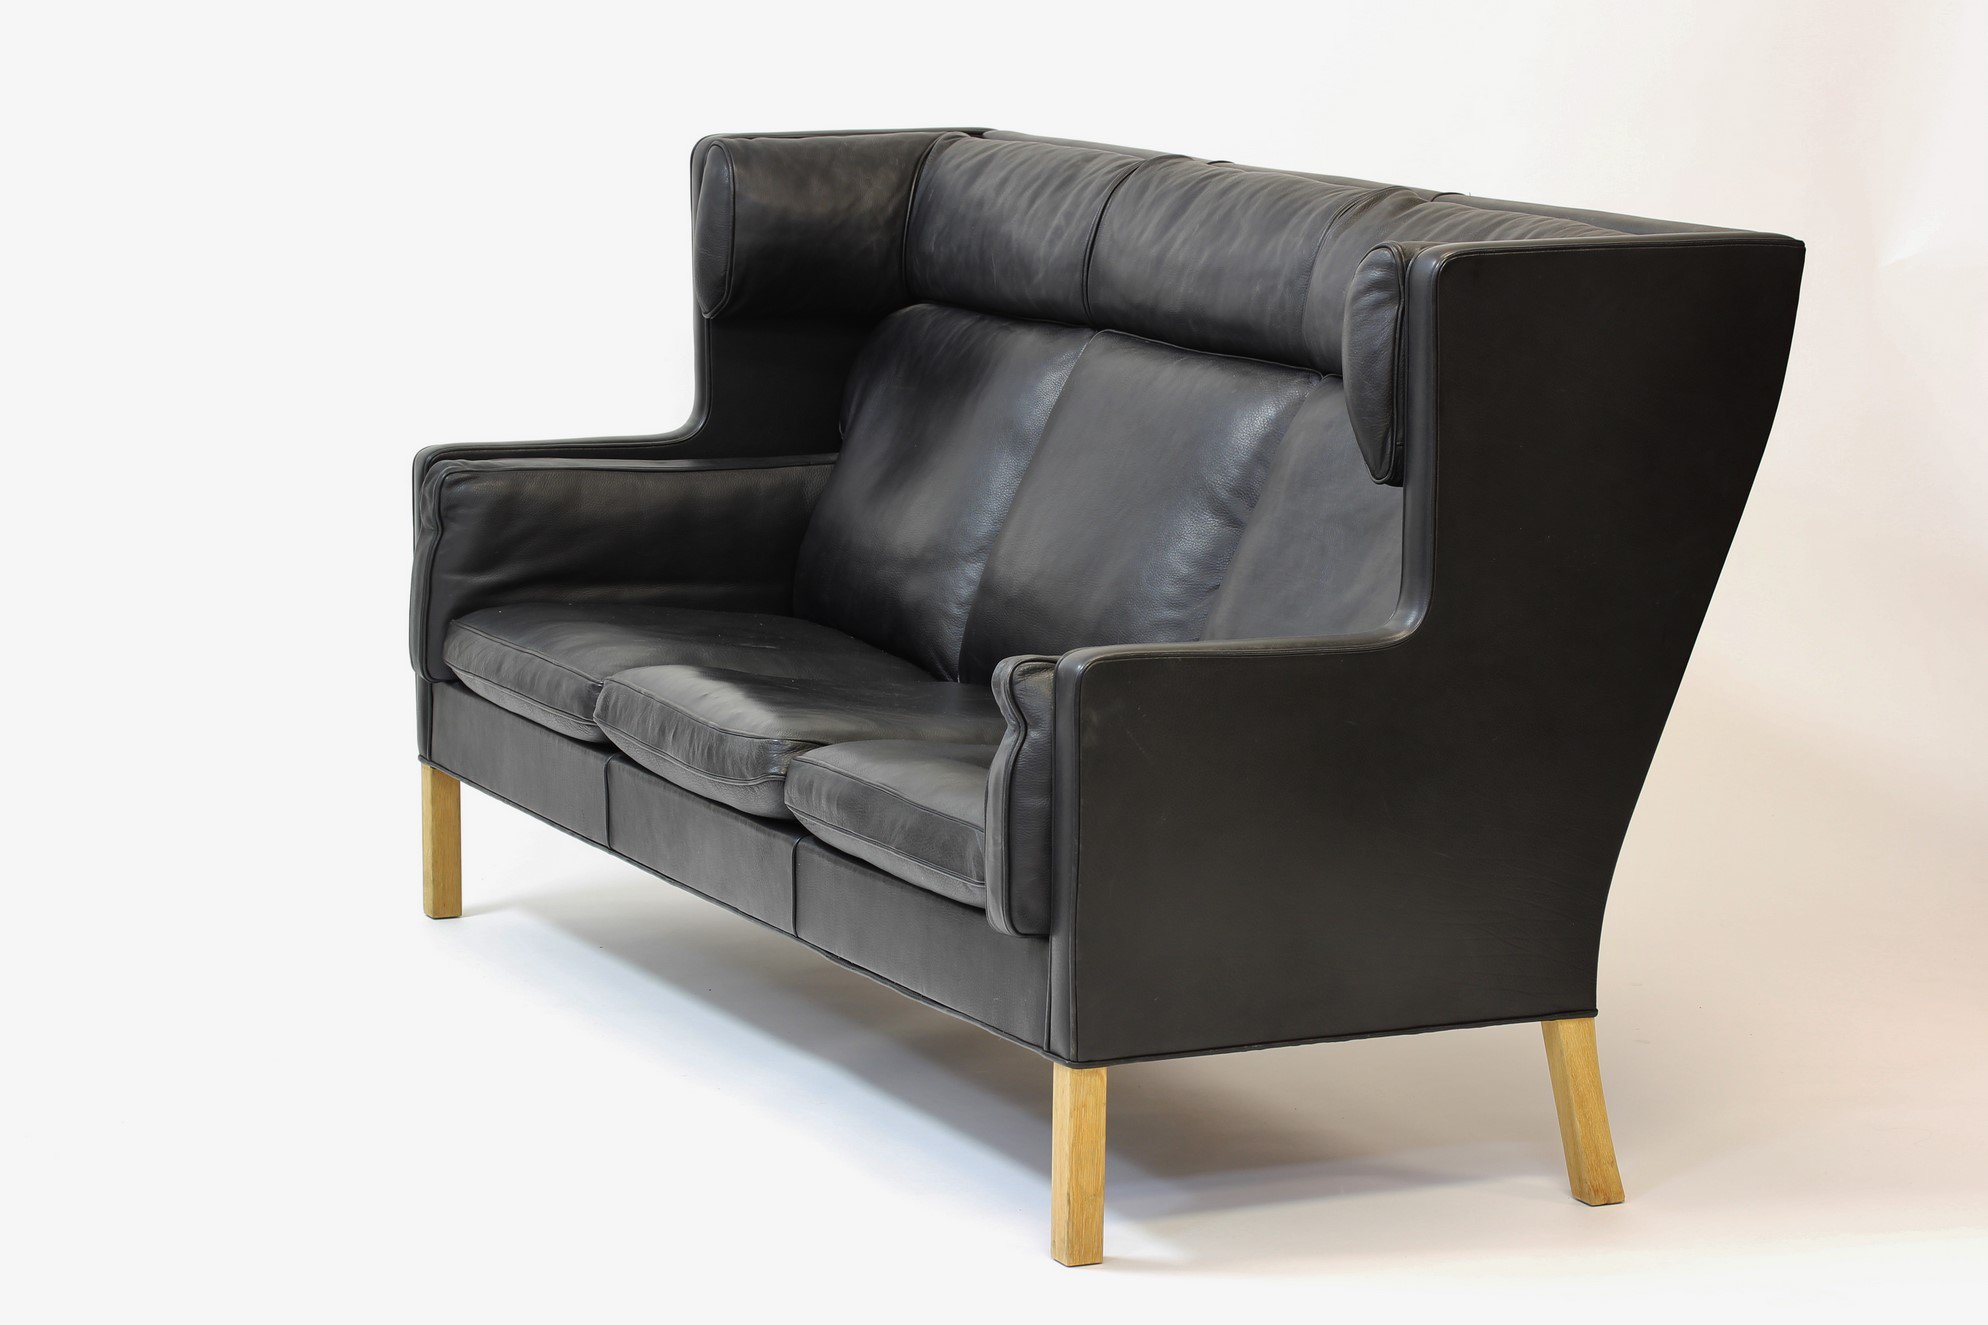 The Dump Furniture Leather Sofas